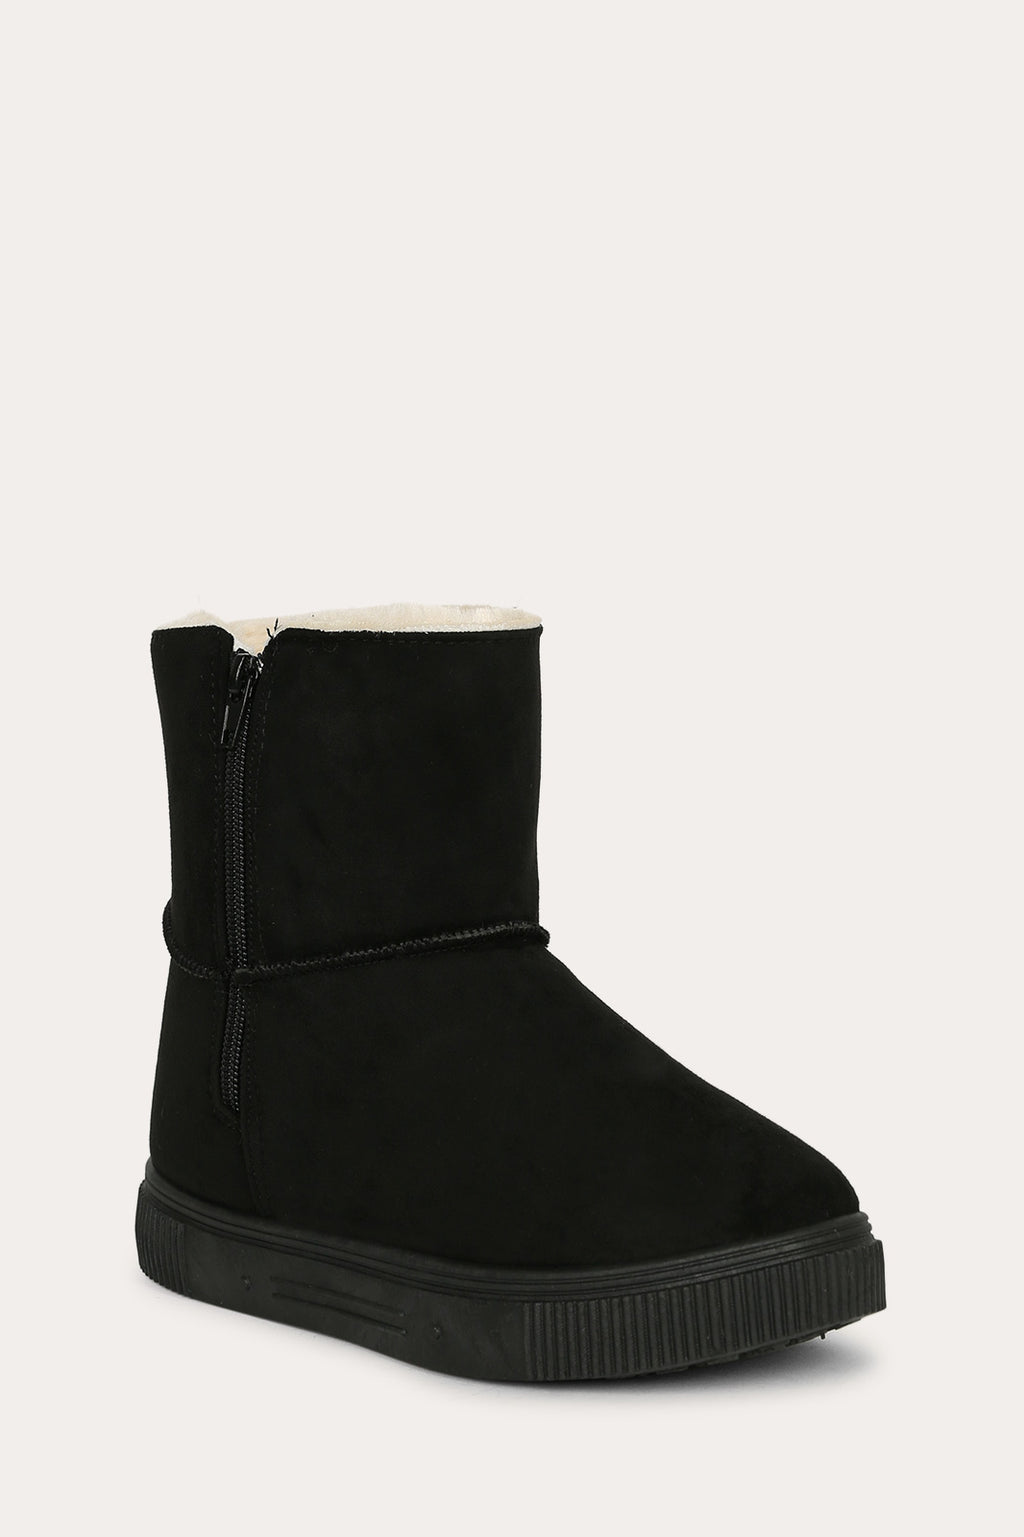 Bamboo Cozette-04 Black Short Boot with Fur Inside